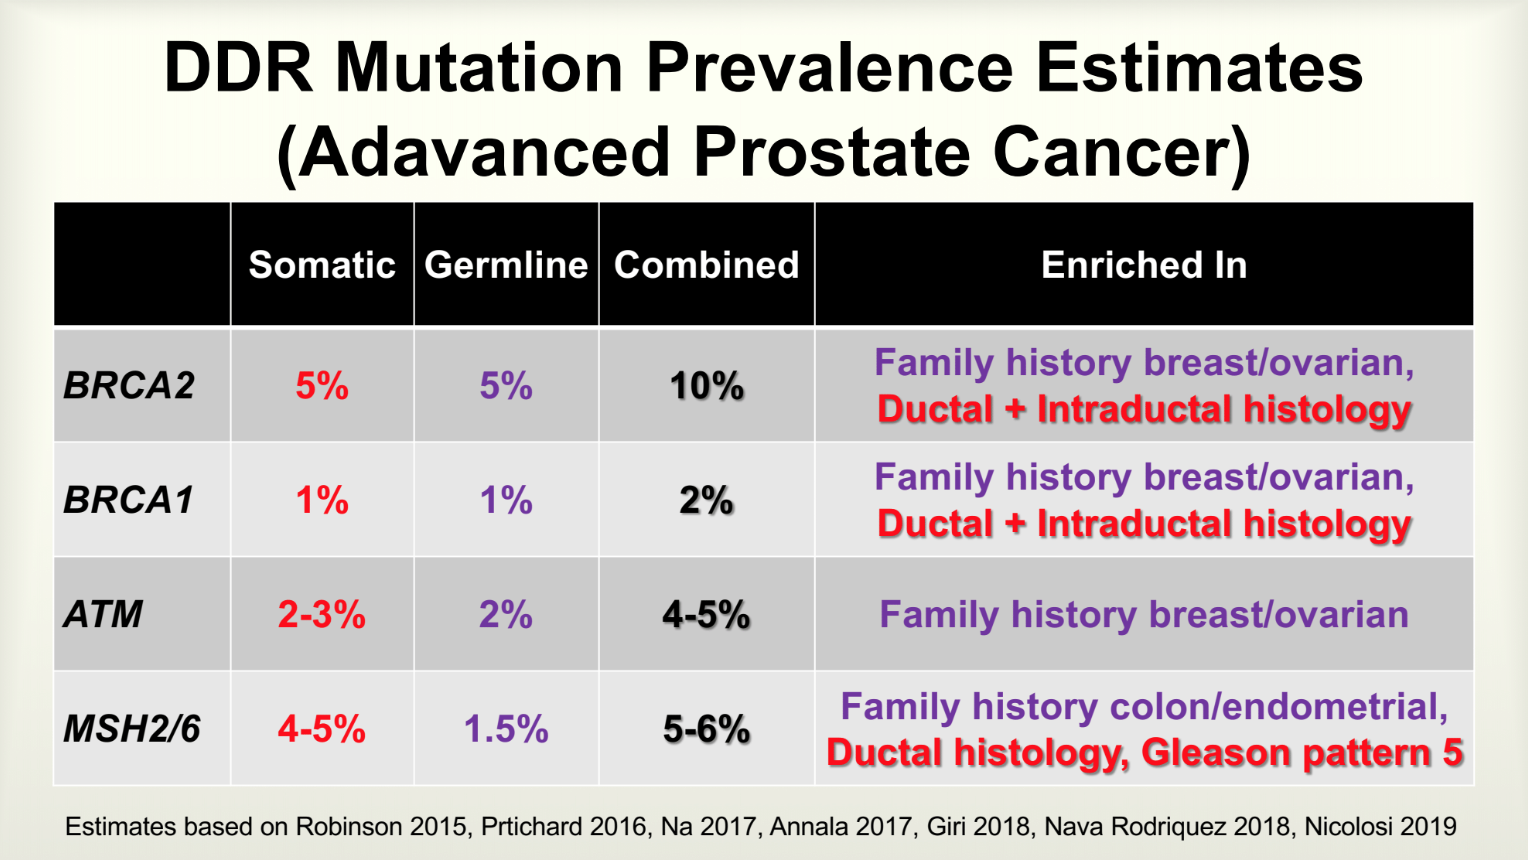 DDR Mutations Prevalence Estimations